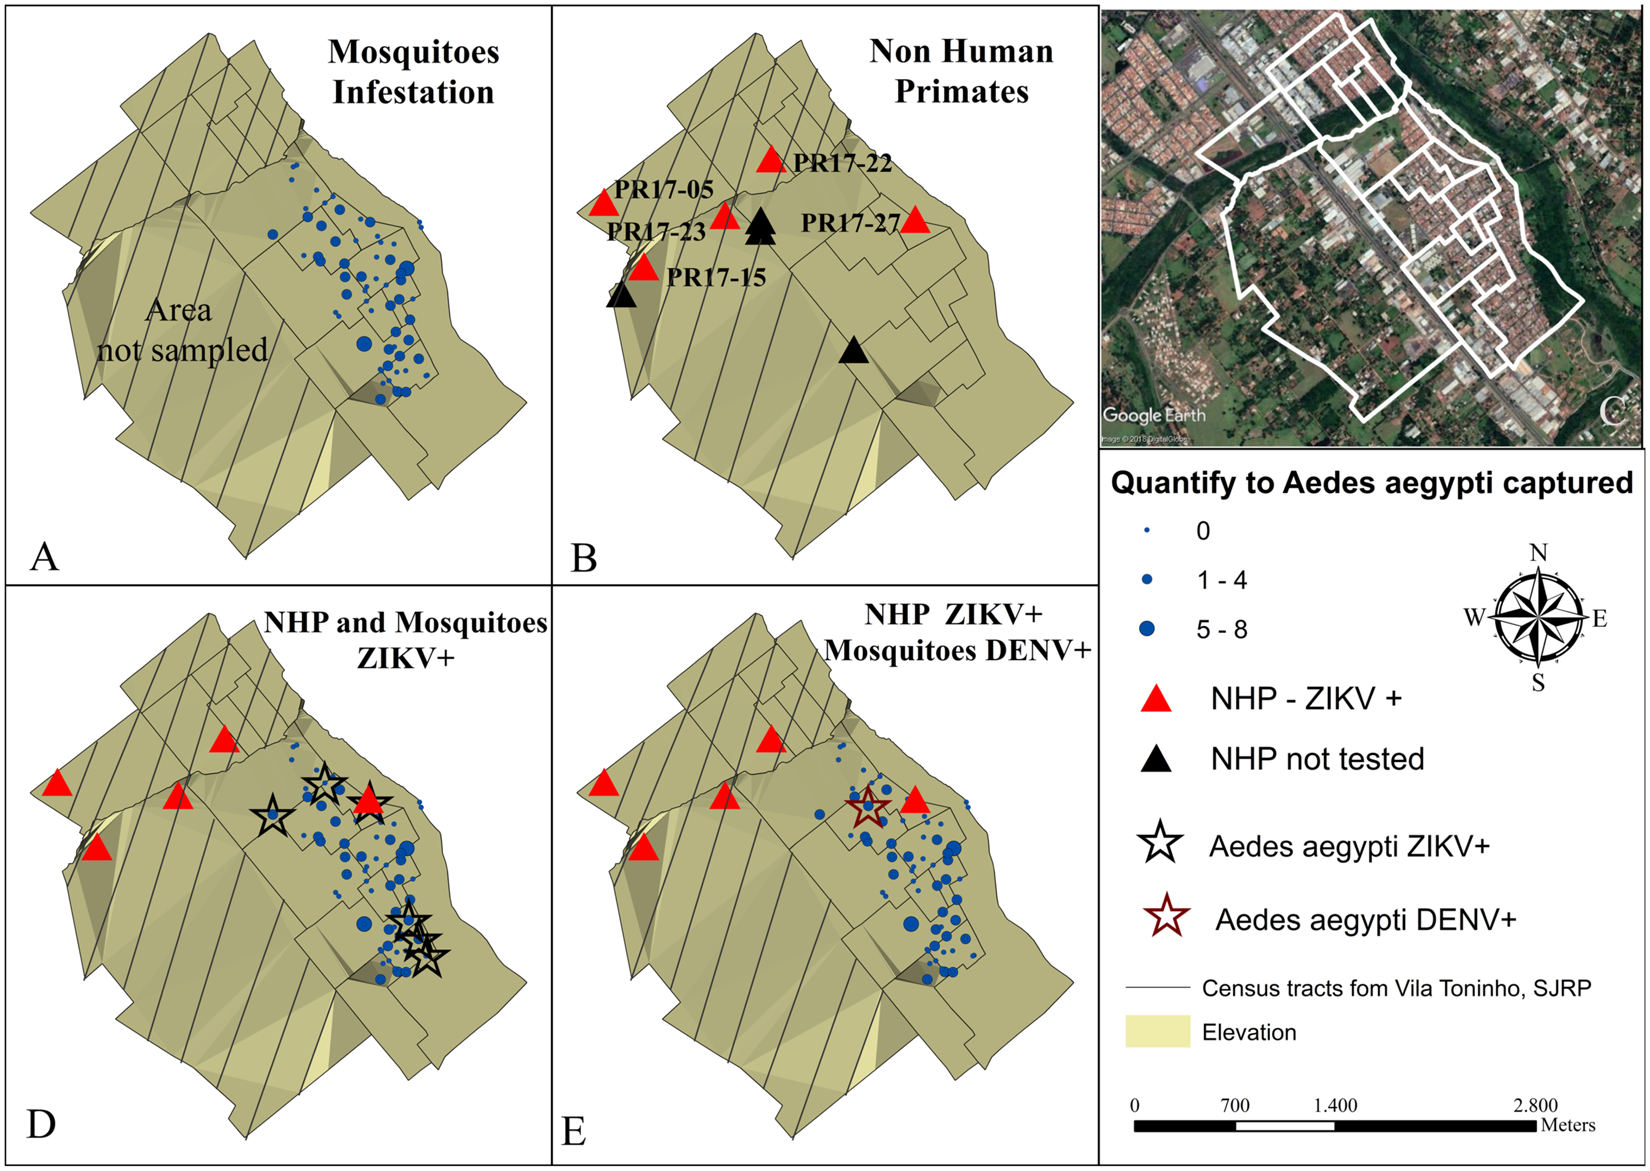 Evidence of natural Zika virus infection in neotropical non-human primates  in Brazil  74f9653c02213